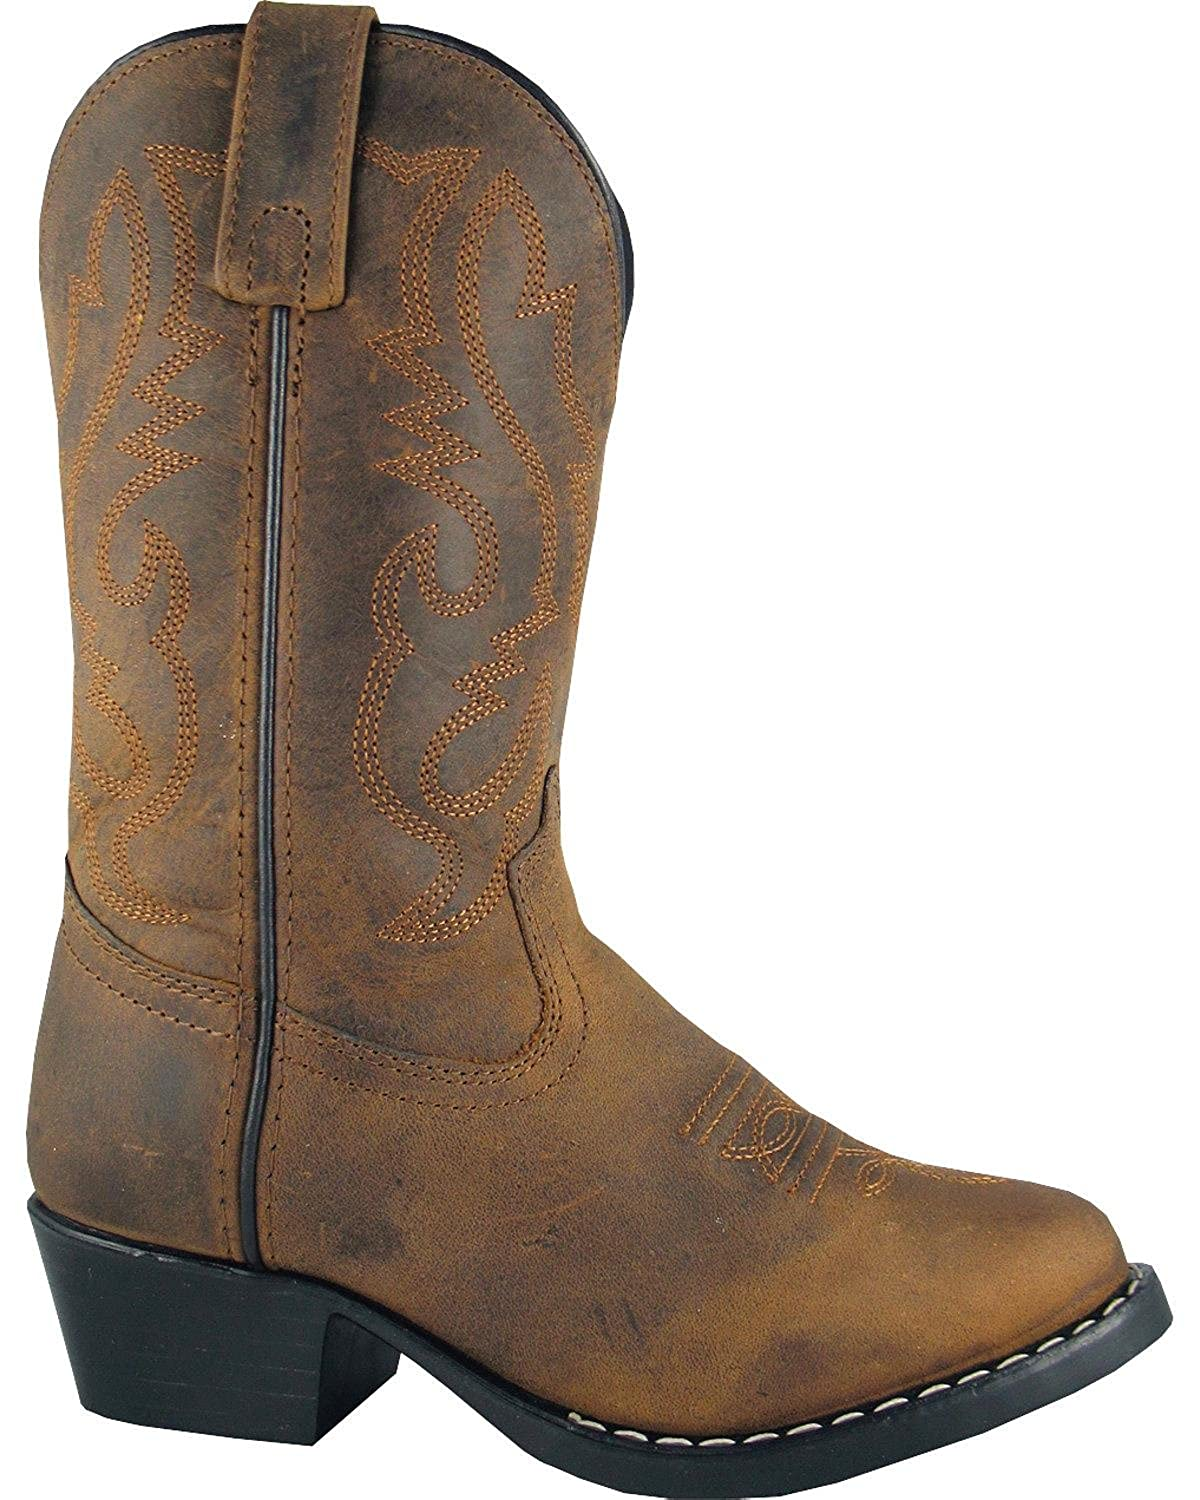 Smoky Mountain Boots Kids Child Denver Leather Western Boot INC 3032